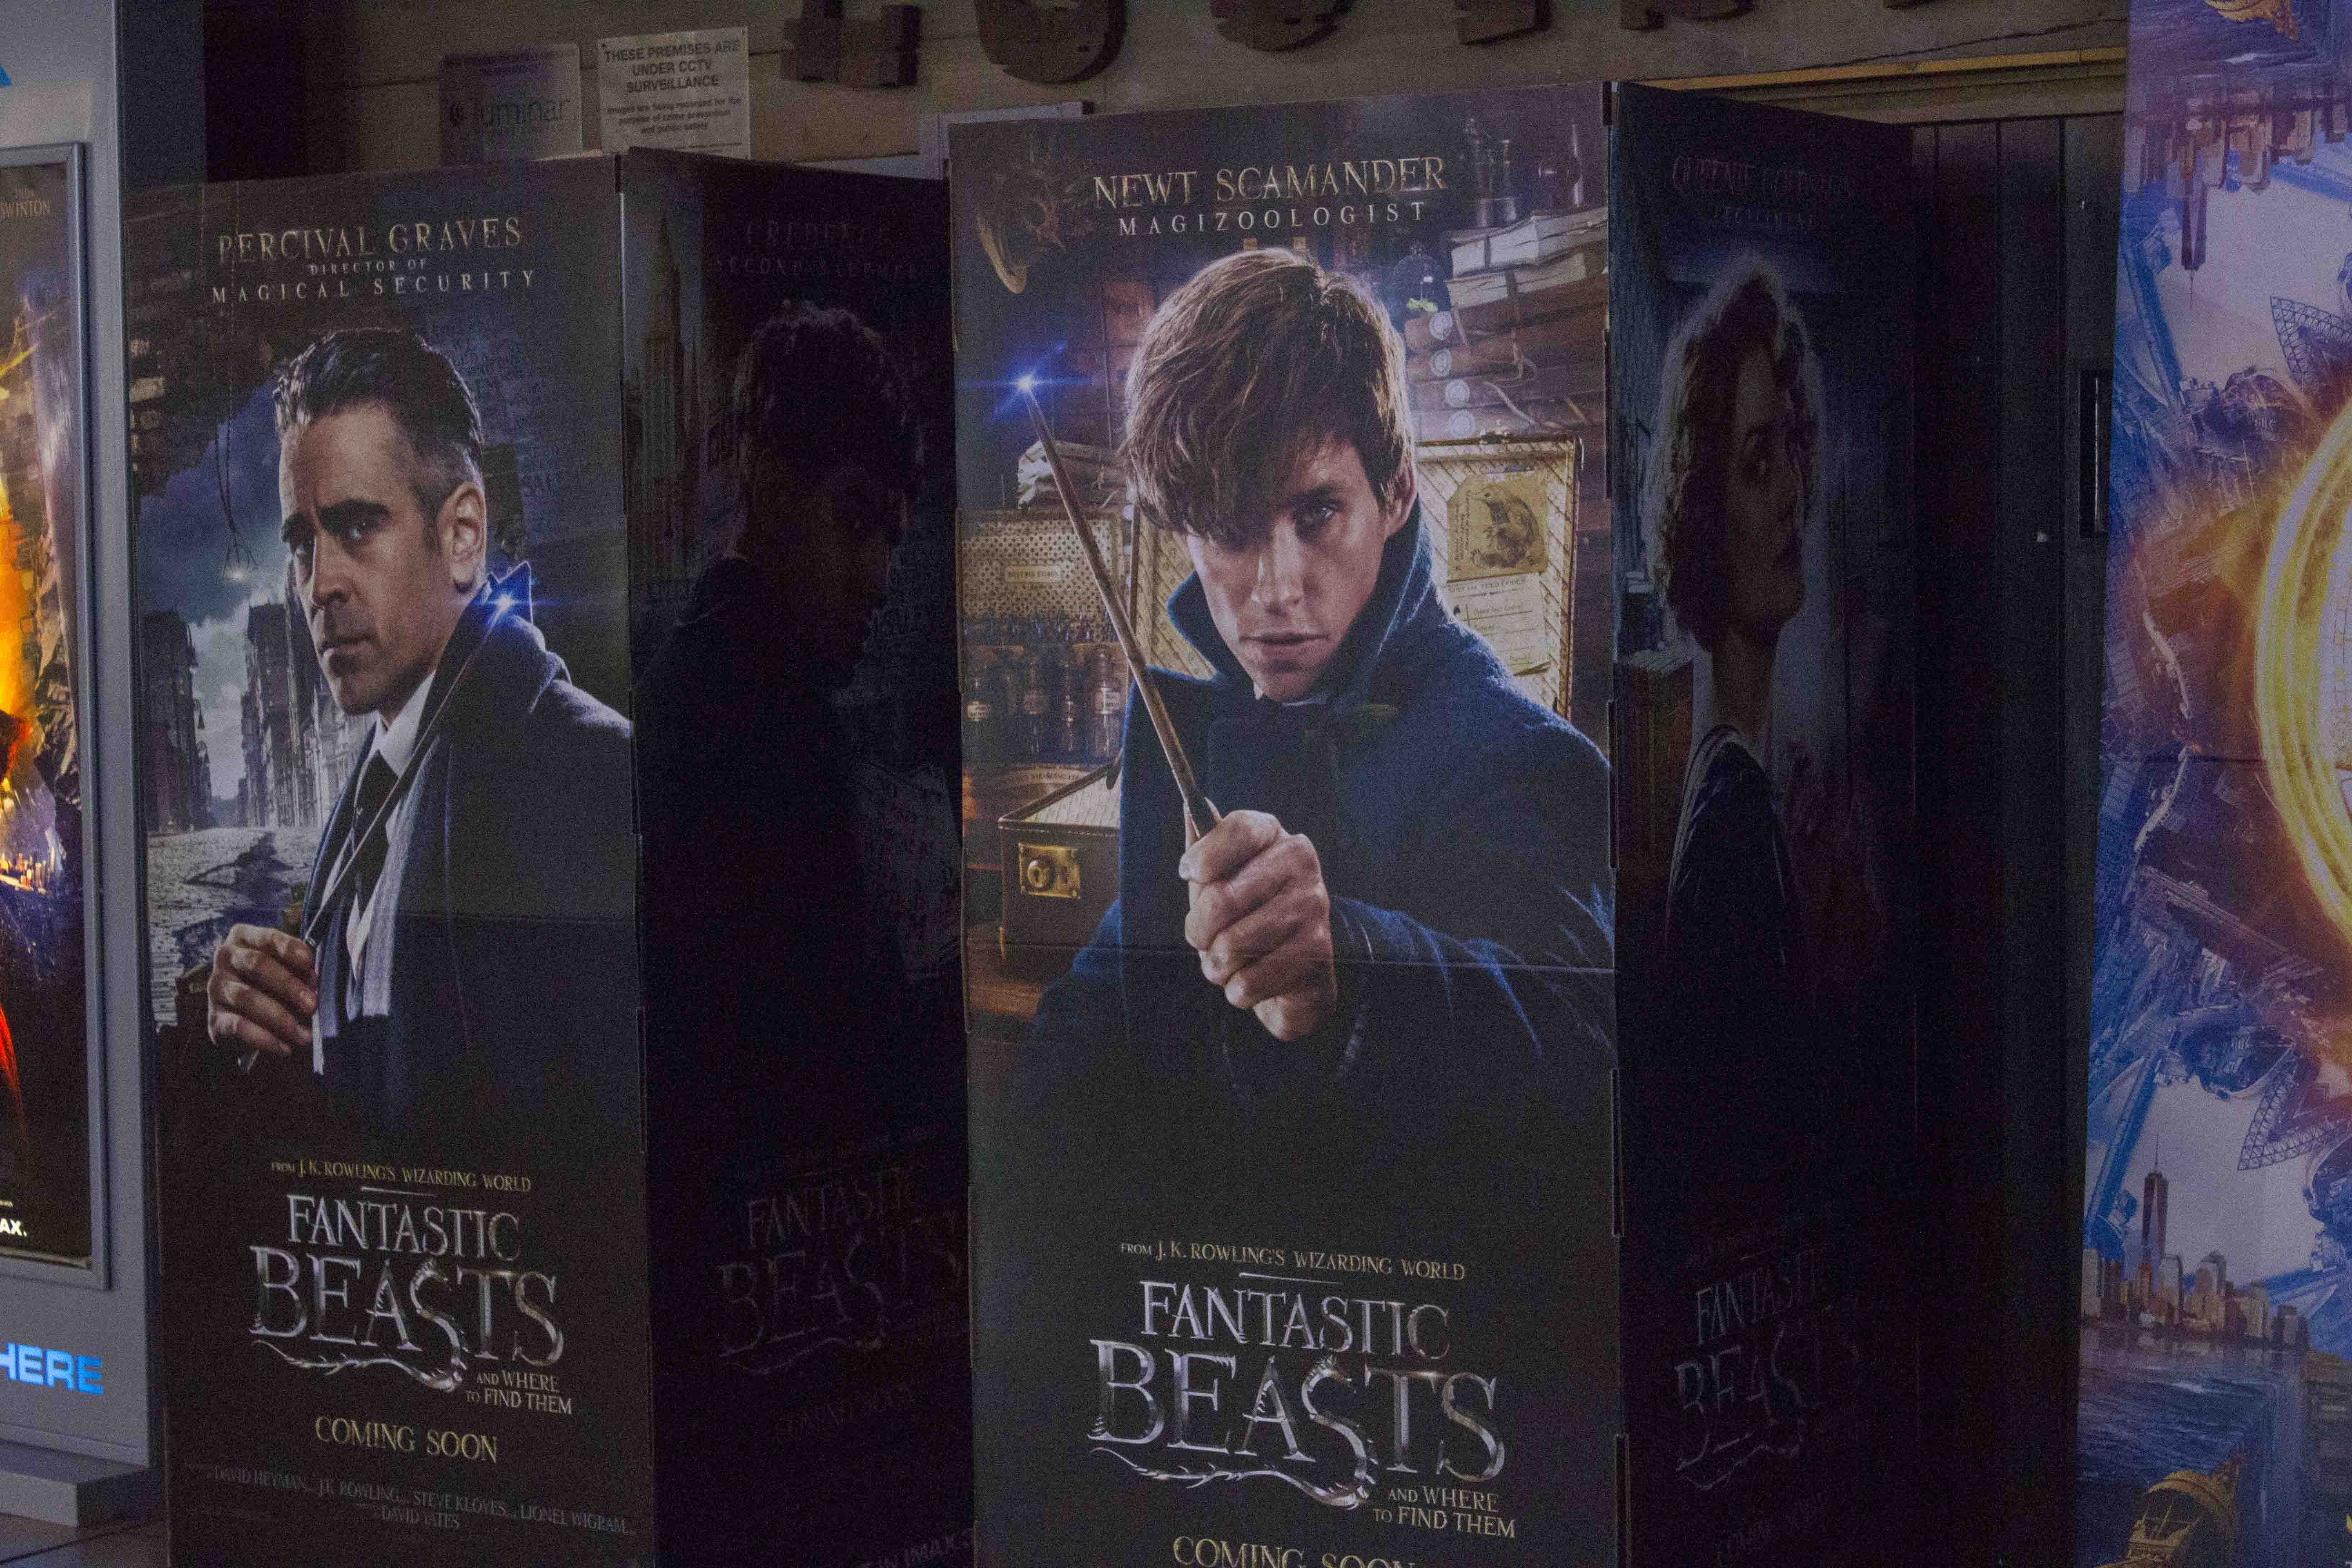 The Fantastic Beasts are coming…